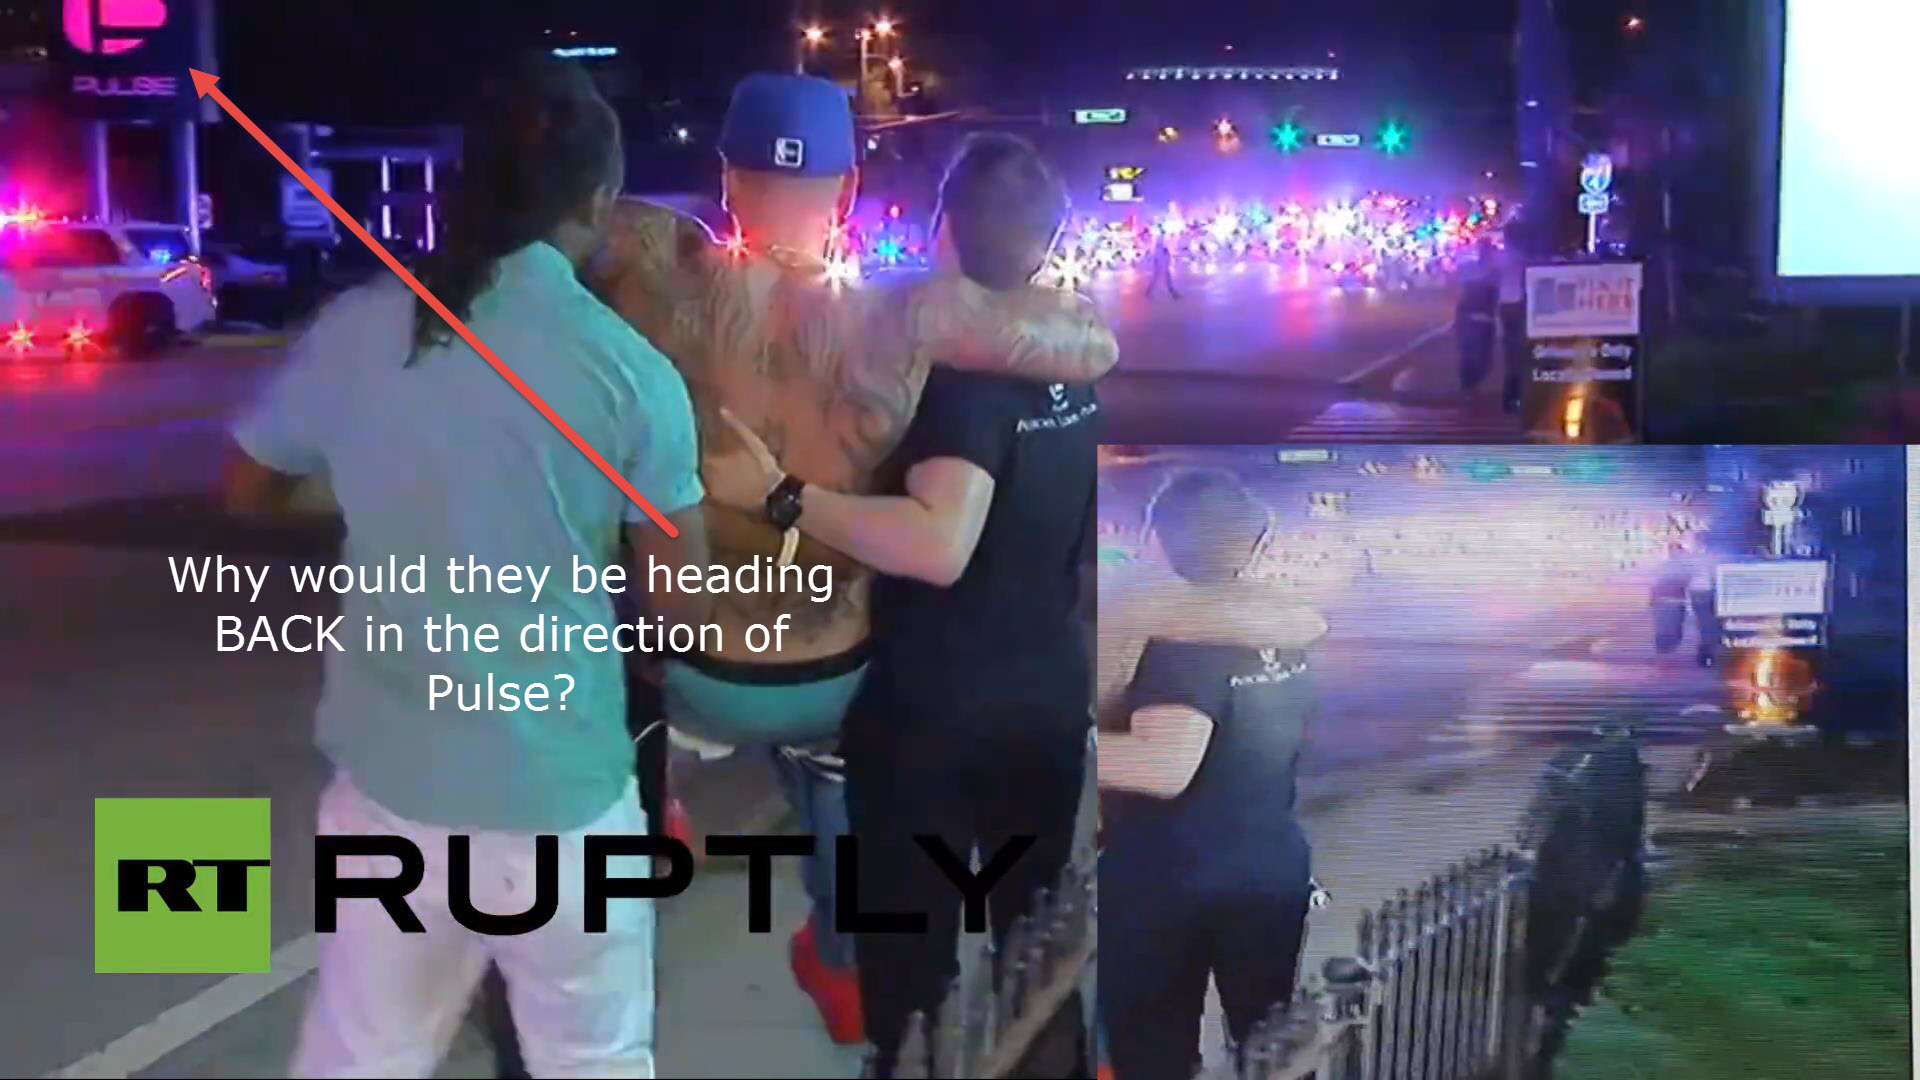 Pulse Orlando Shooting Victims Playing & Heading Back to Pulse During Shooting Pulse-10